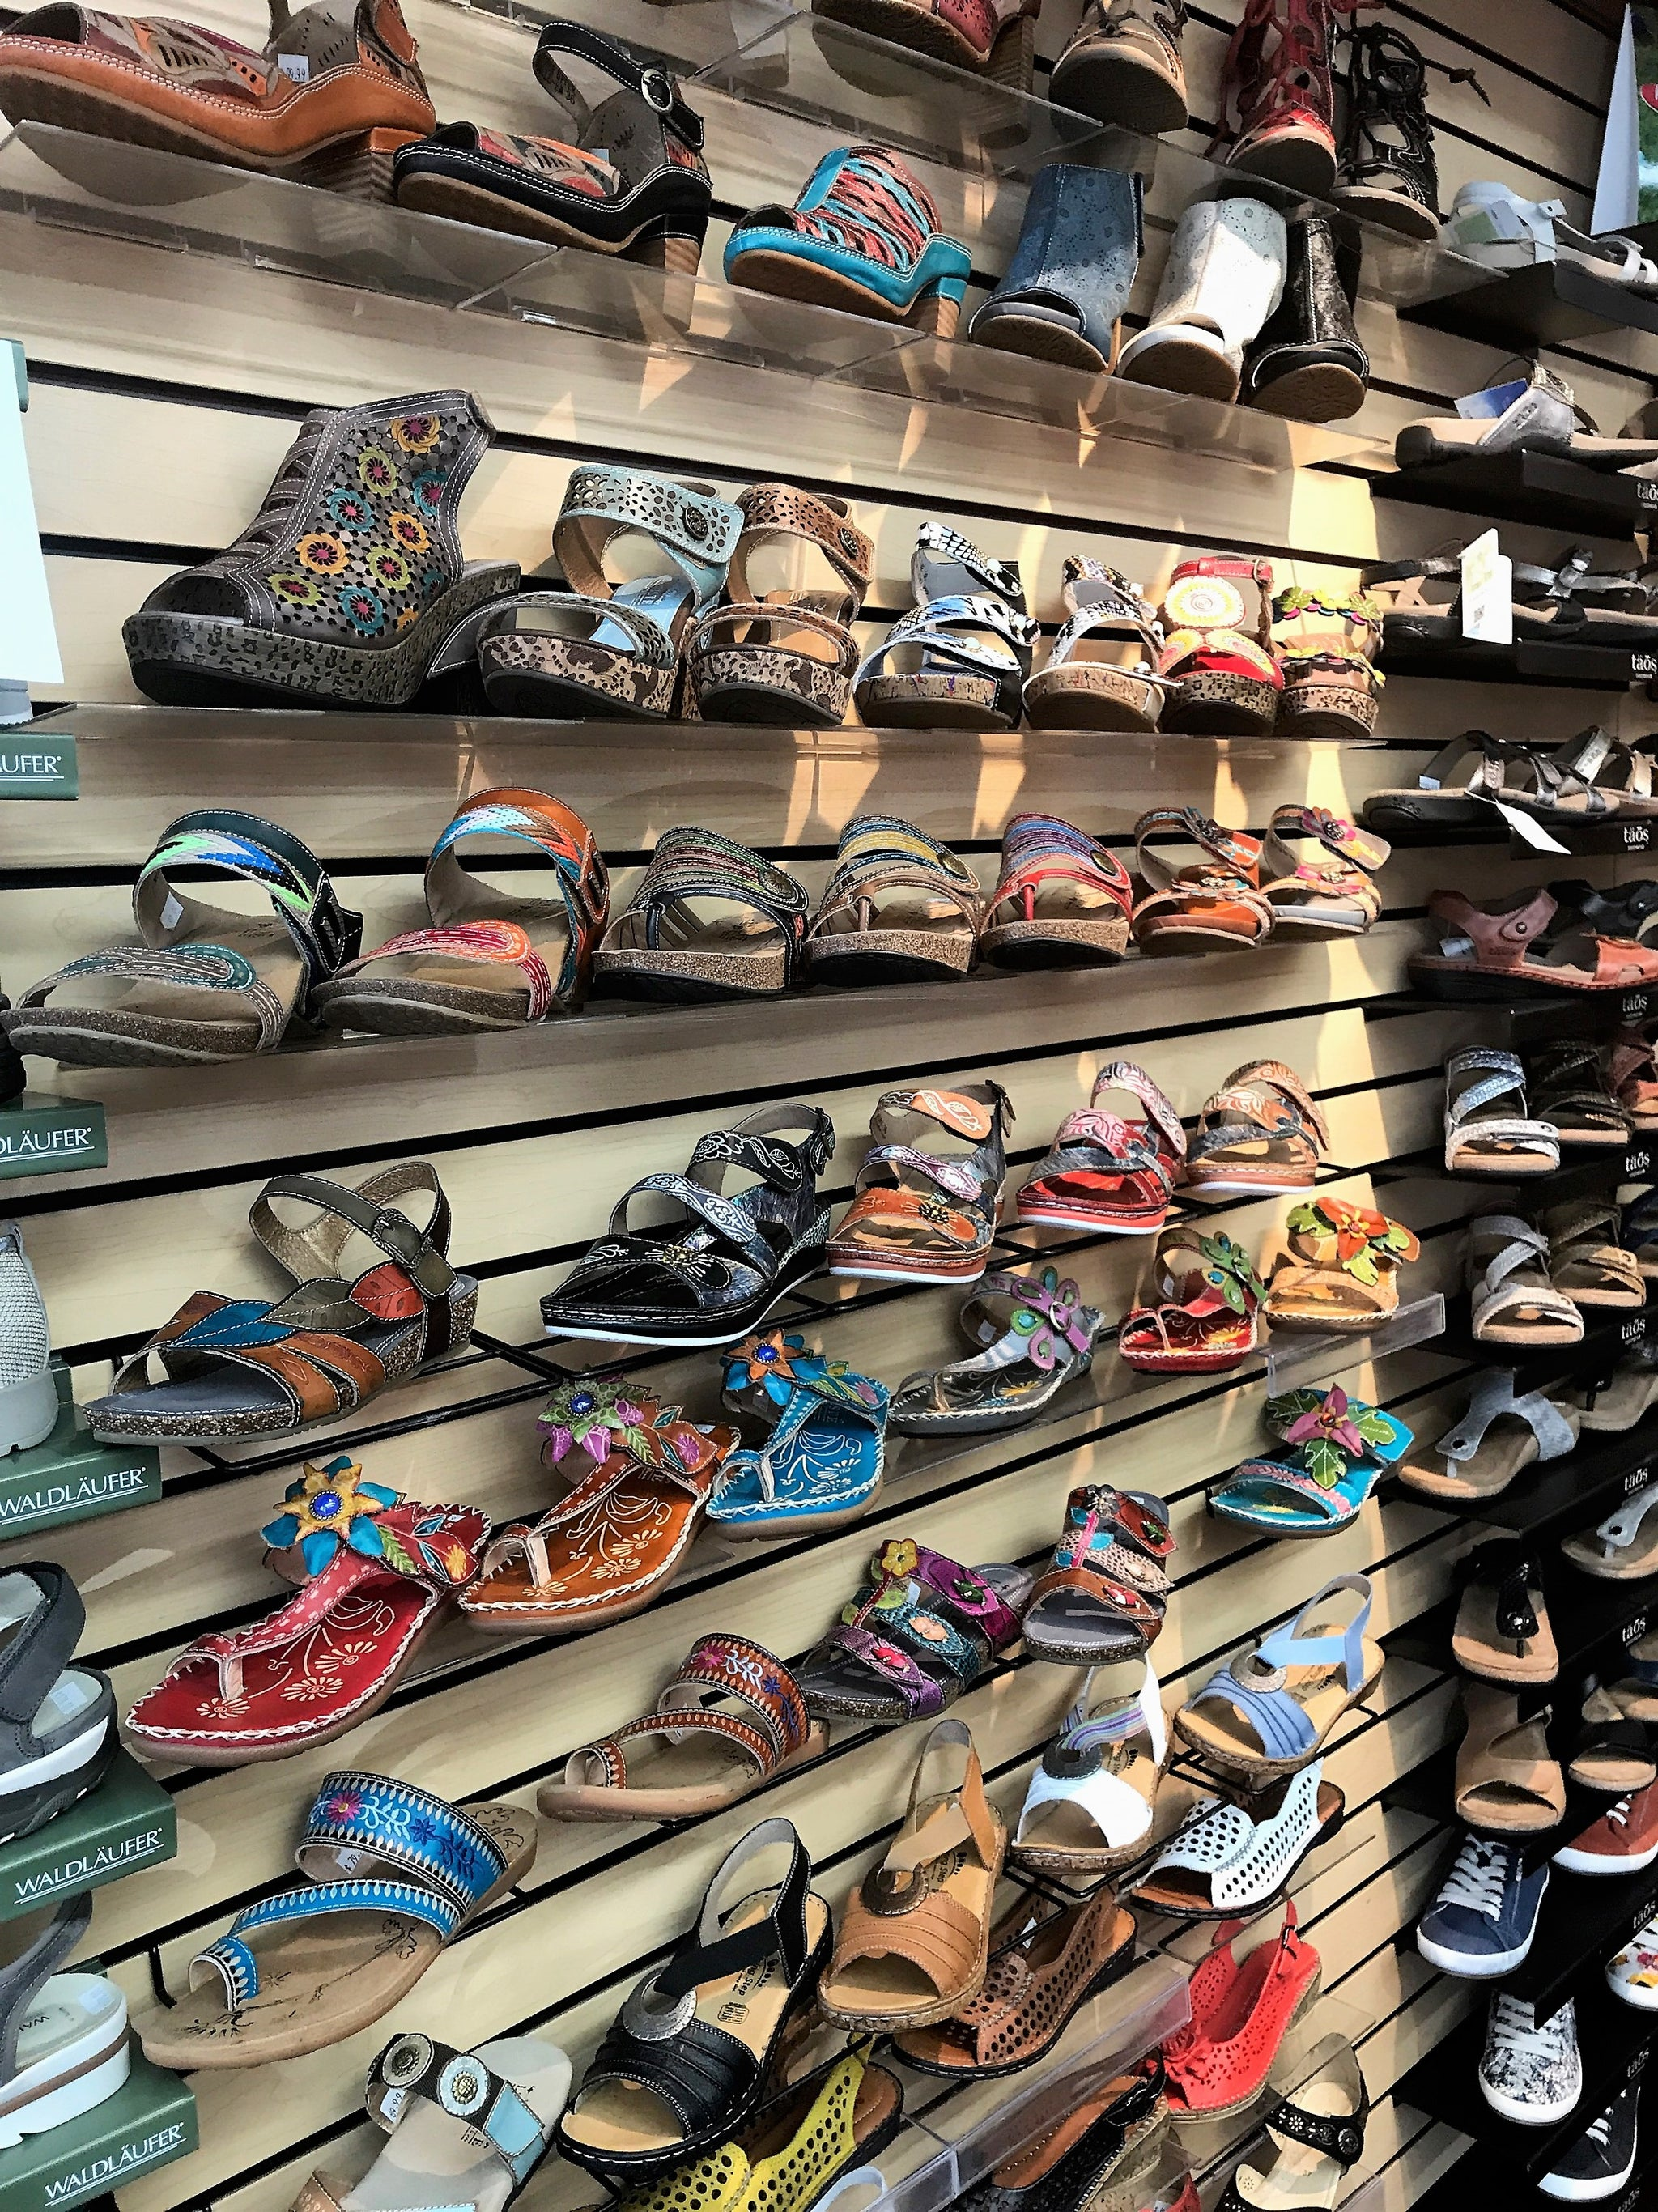 Becker Service Becker's Best Selection ShoesOffering Our And FKTc1lJ3